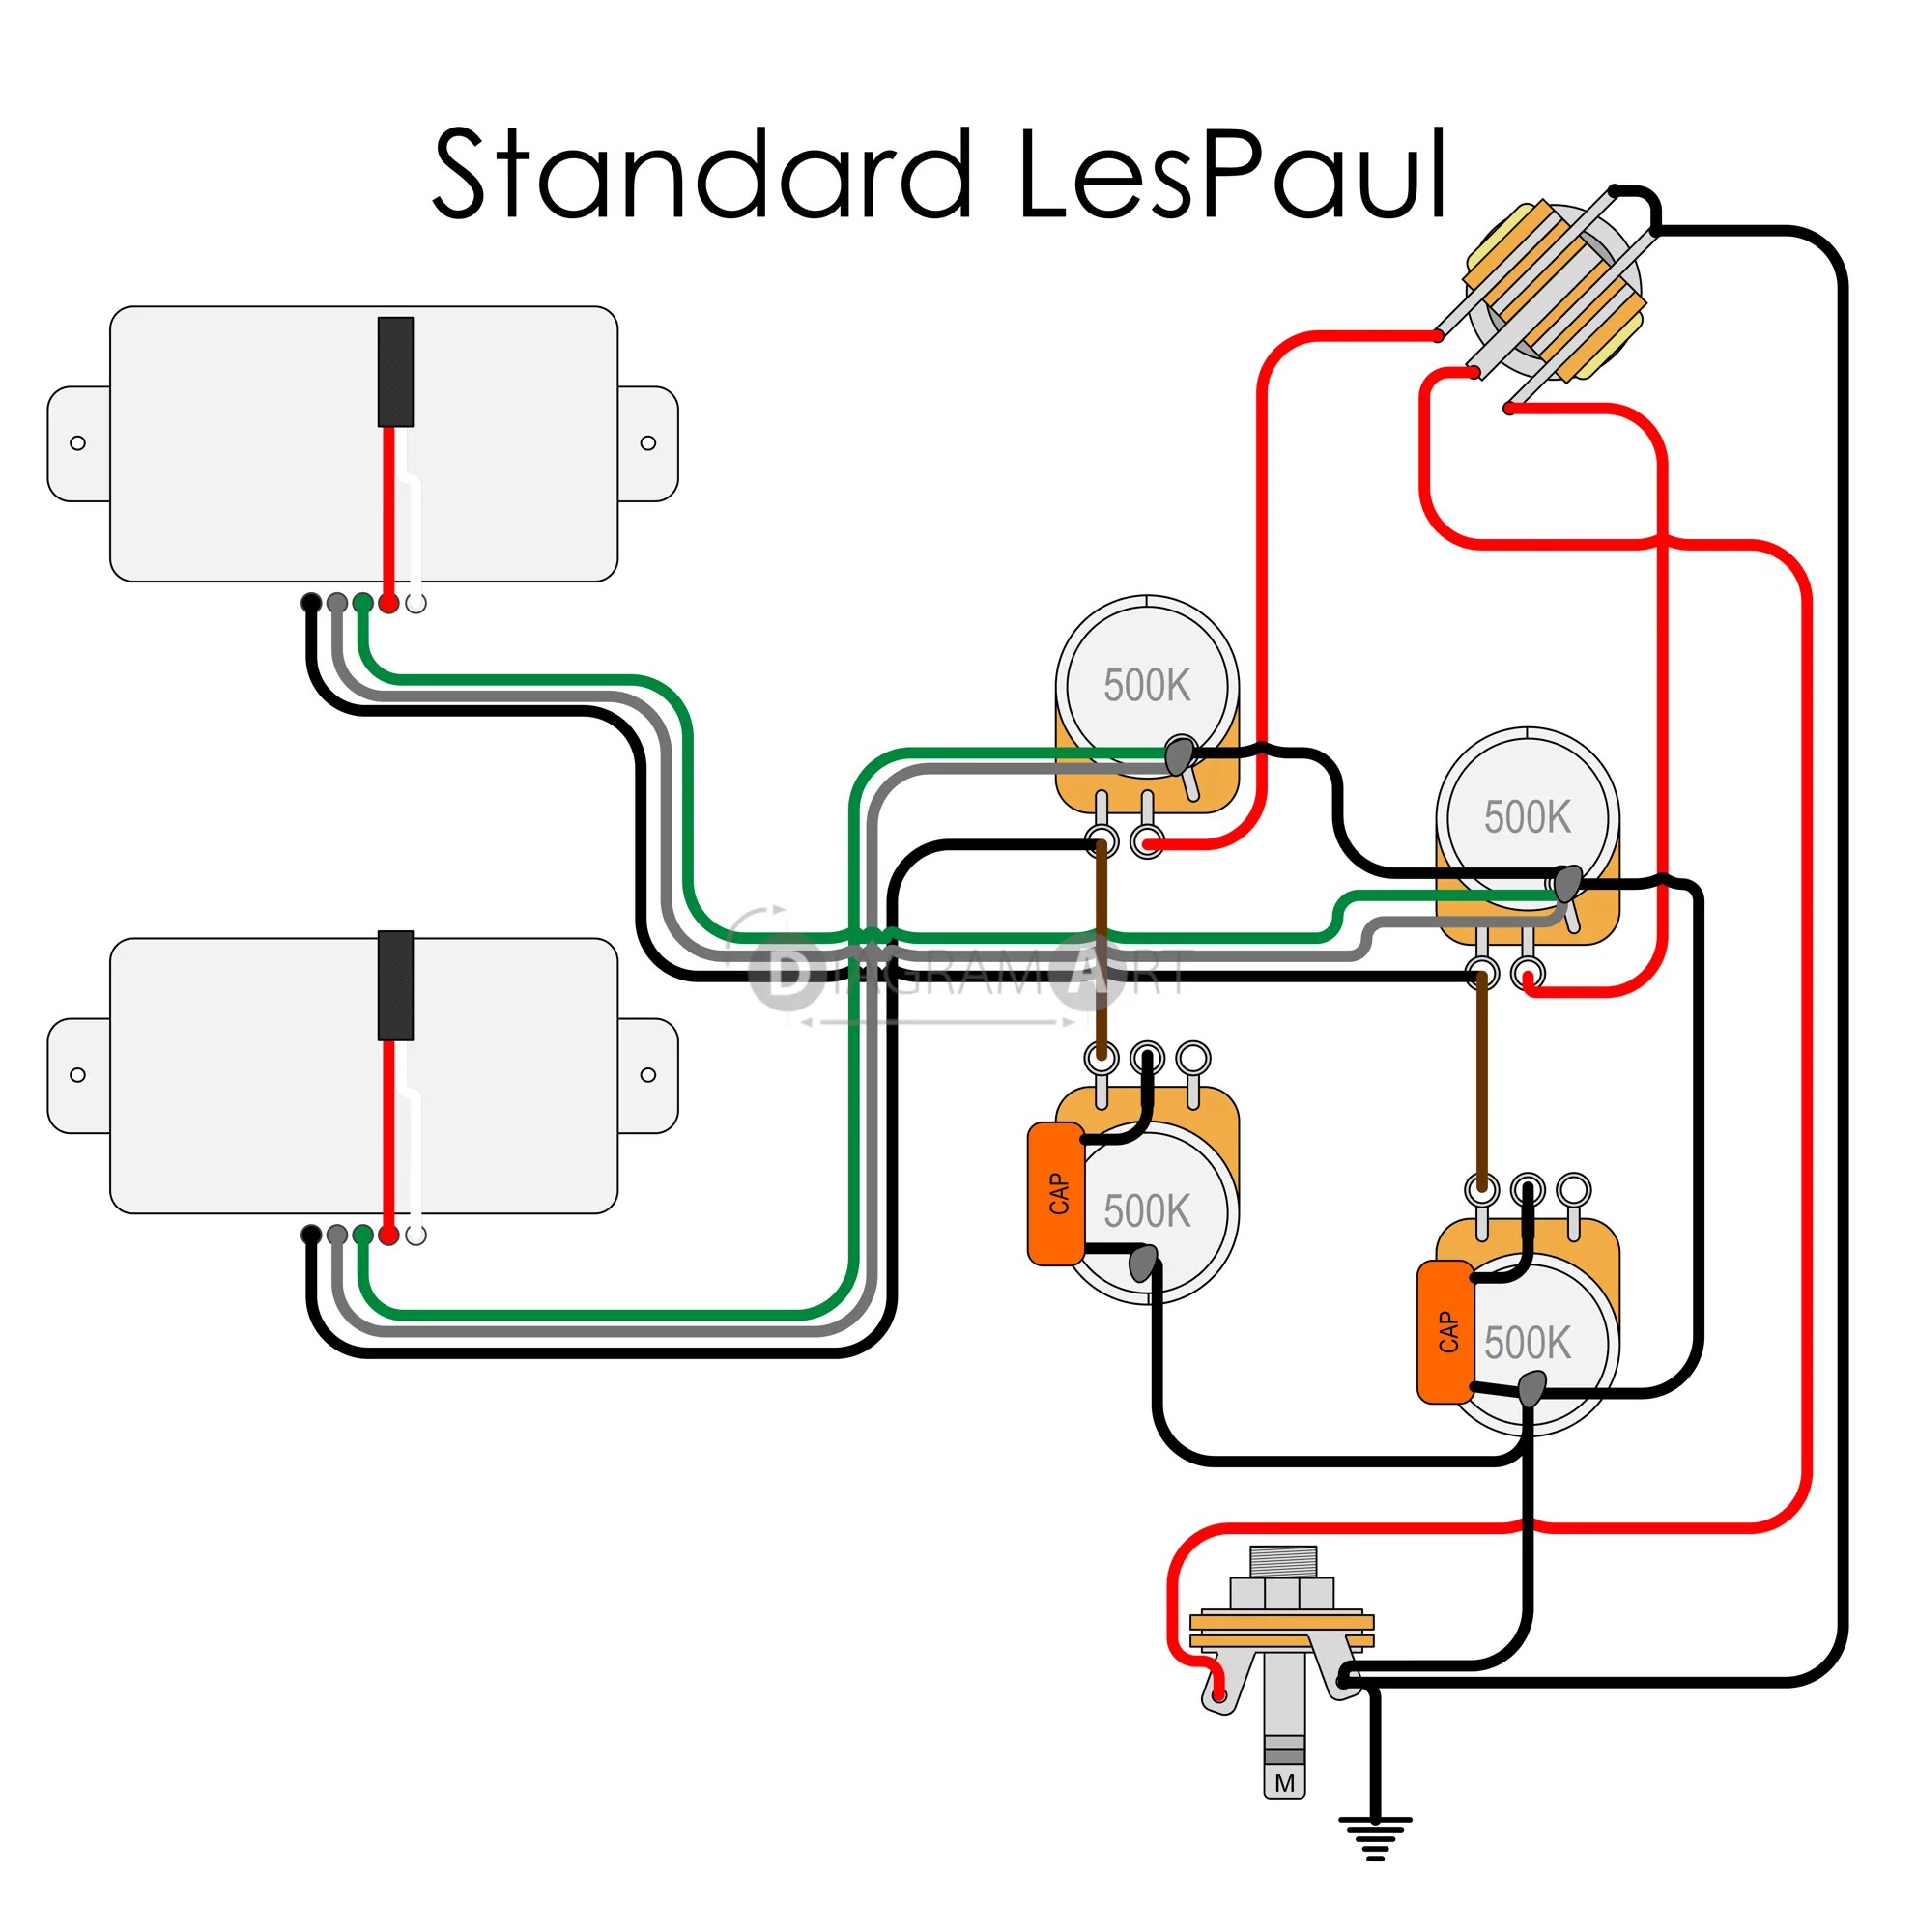 50 s style les paul wiring diagram 1993 volvo 240 stereo electric guitar standard lespaul circuit